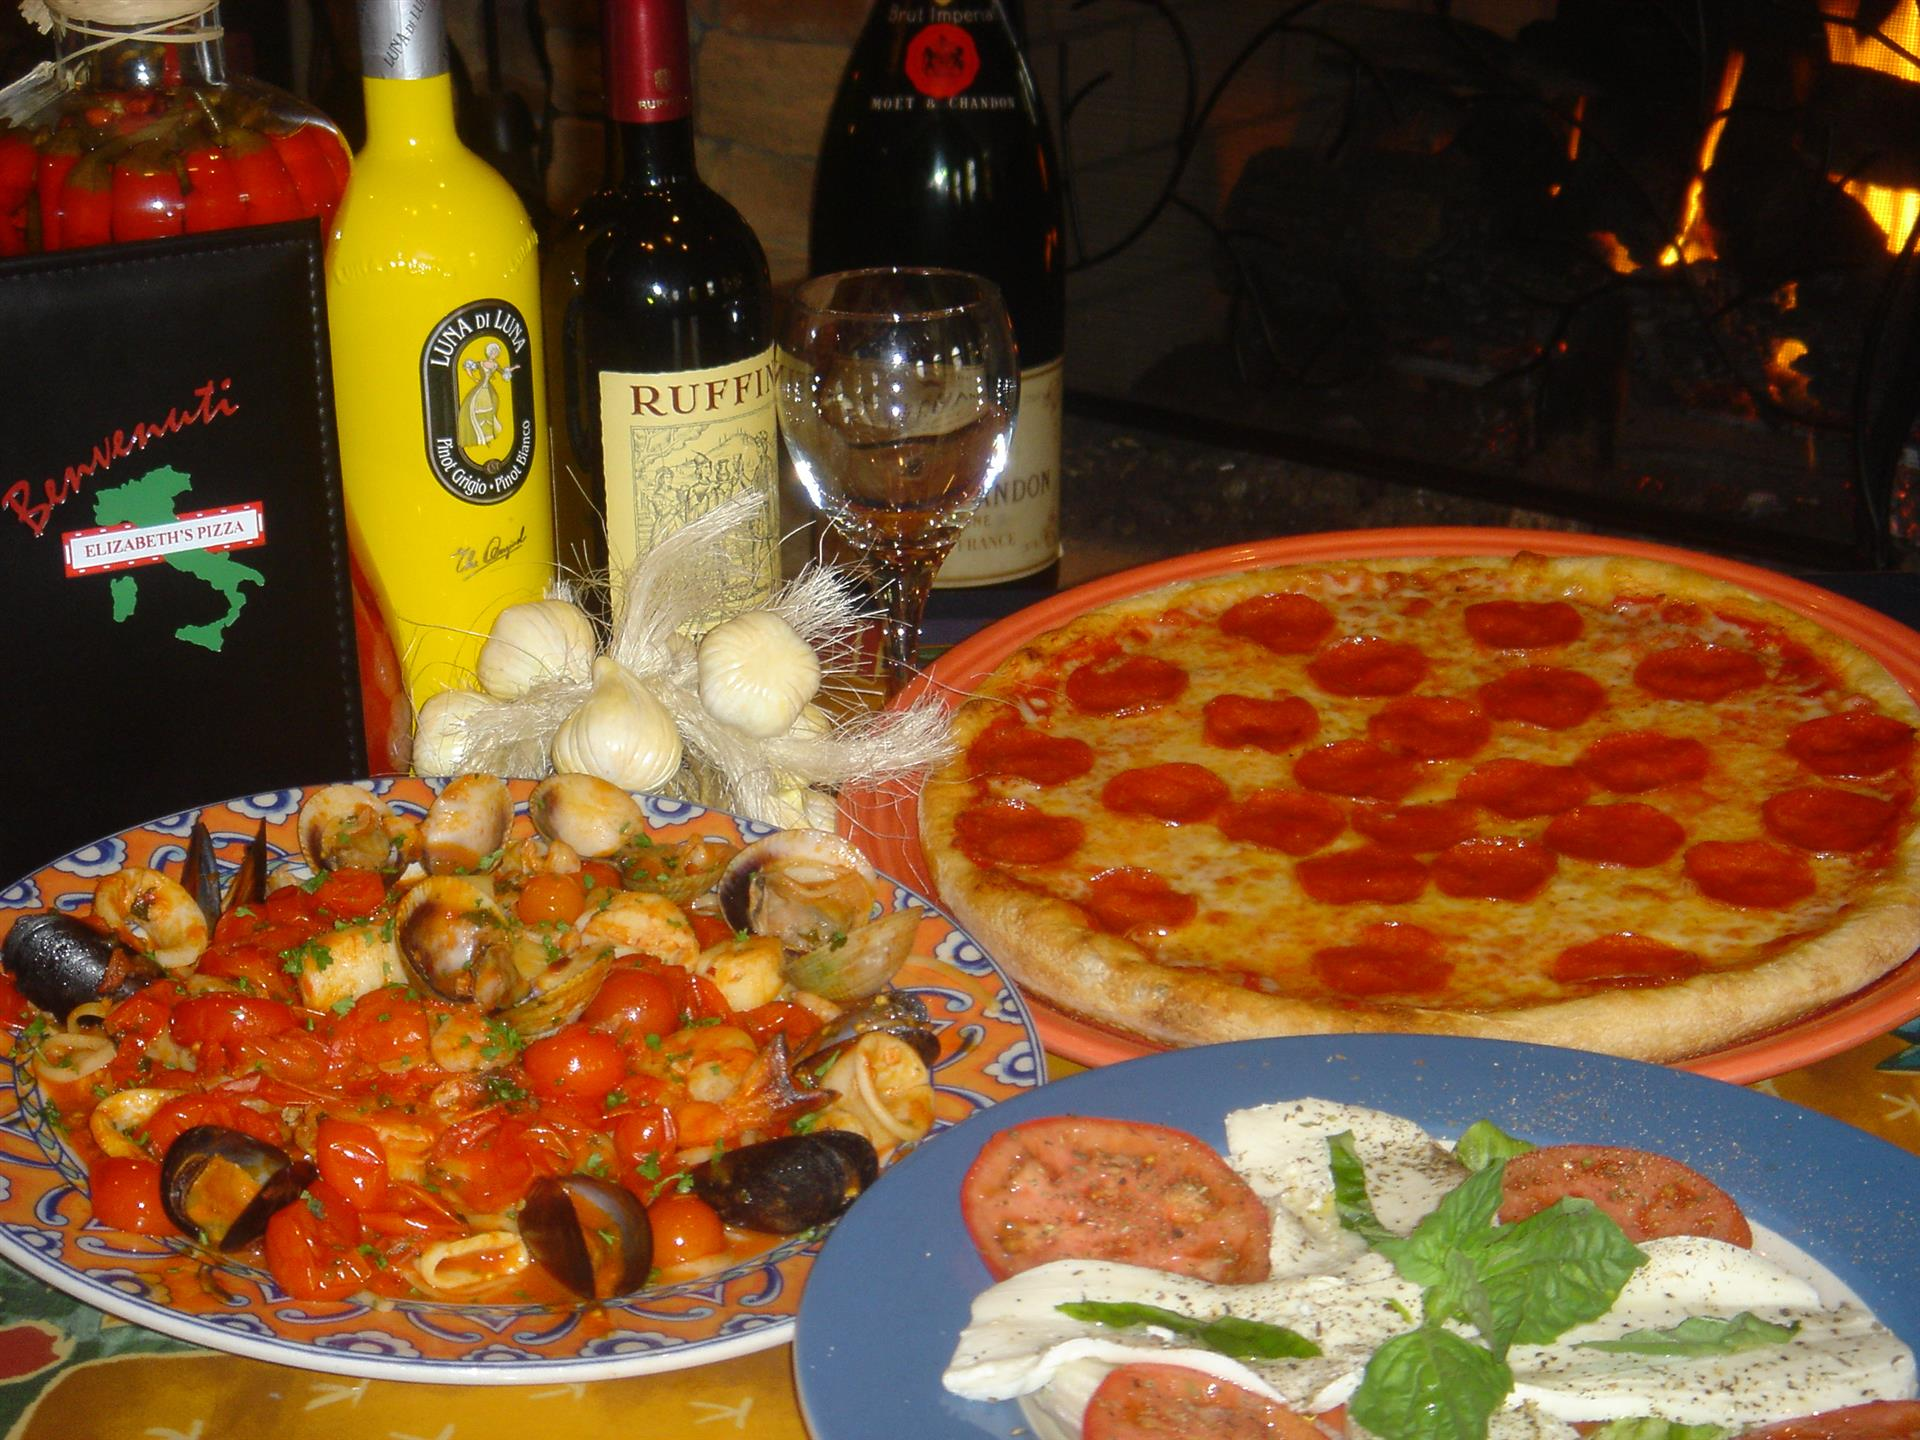 pepperoni with other entrees and several bottles of wine